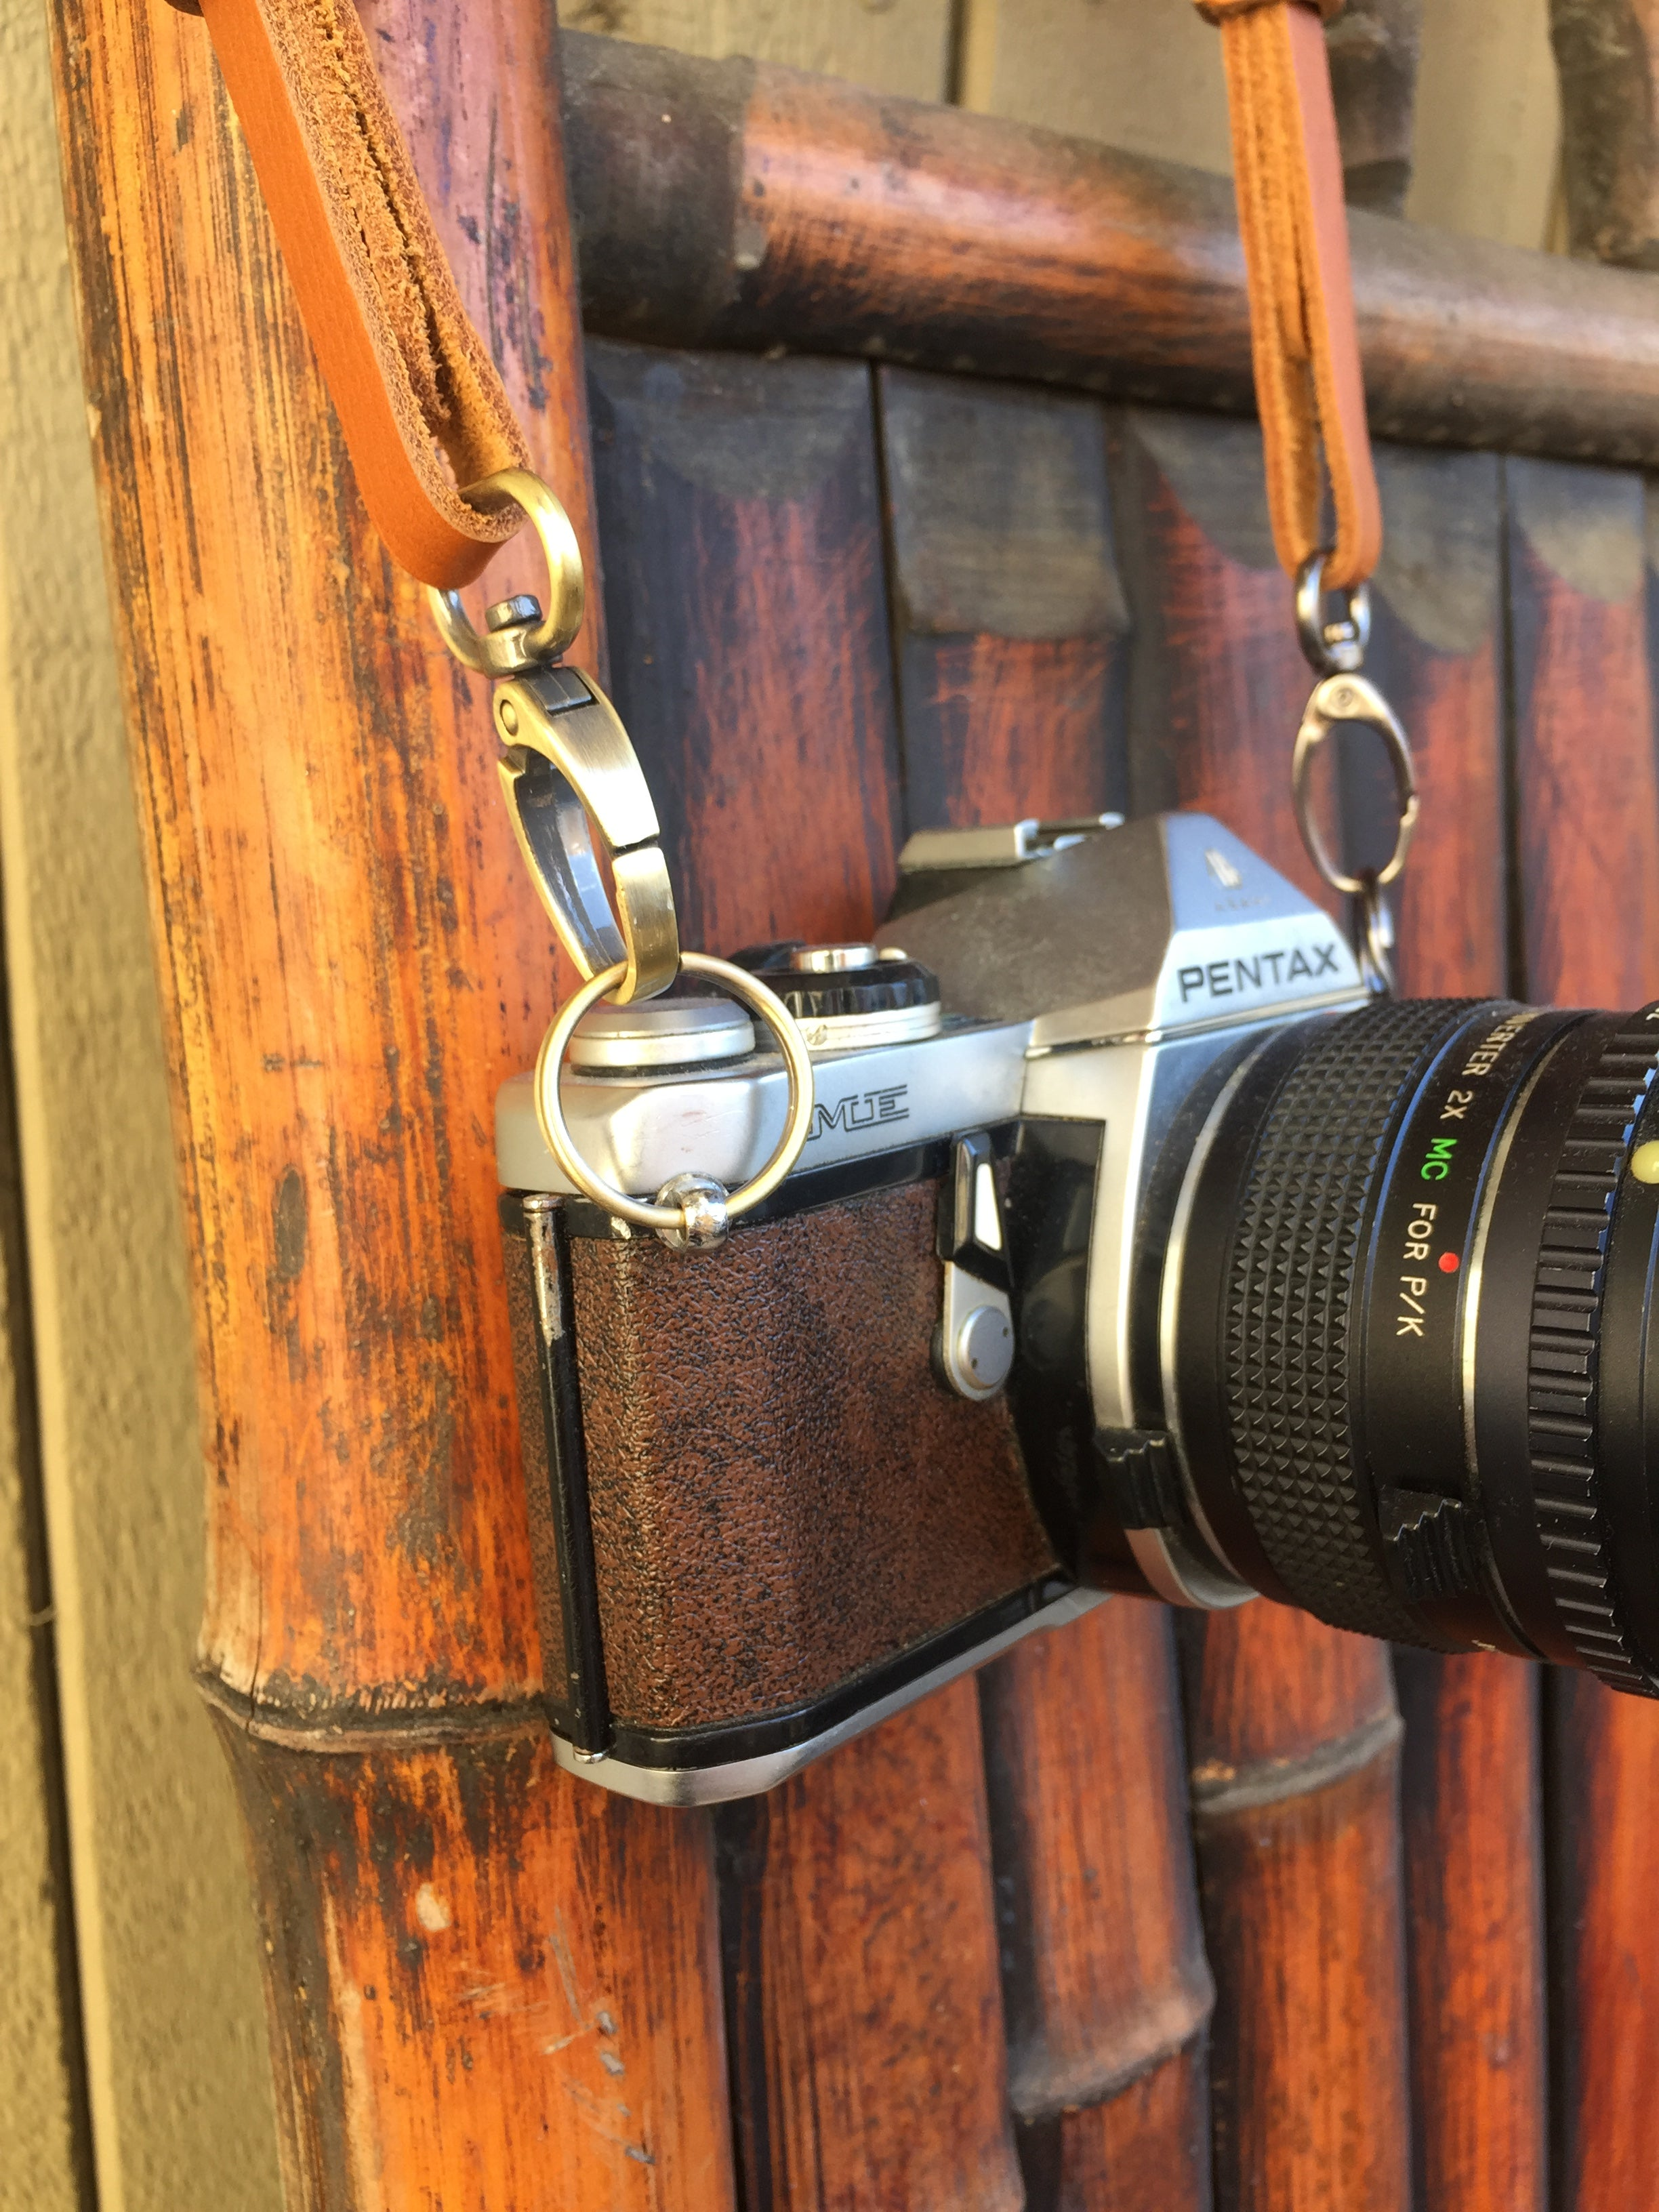 How camera strap connectors can connect a leather camera strap.